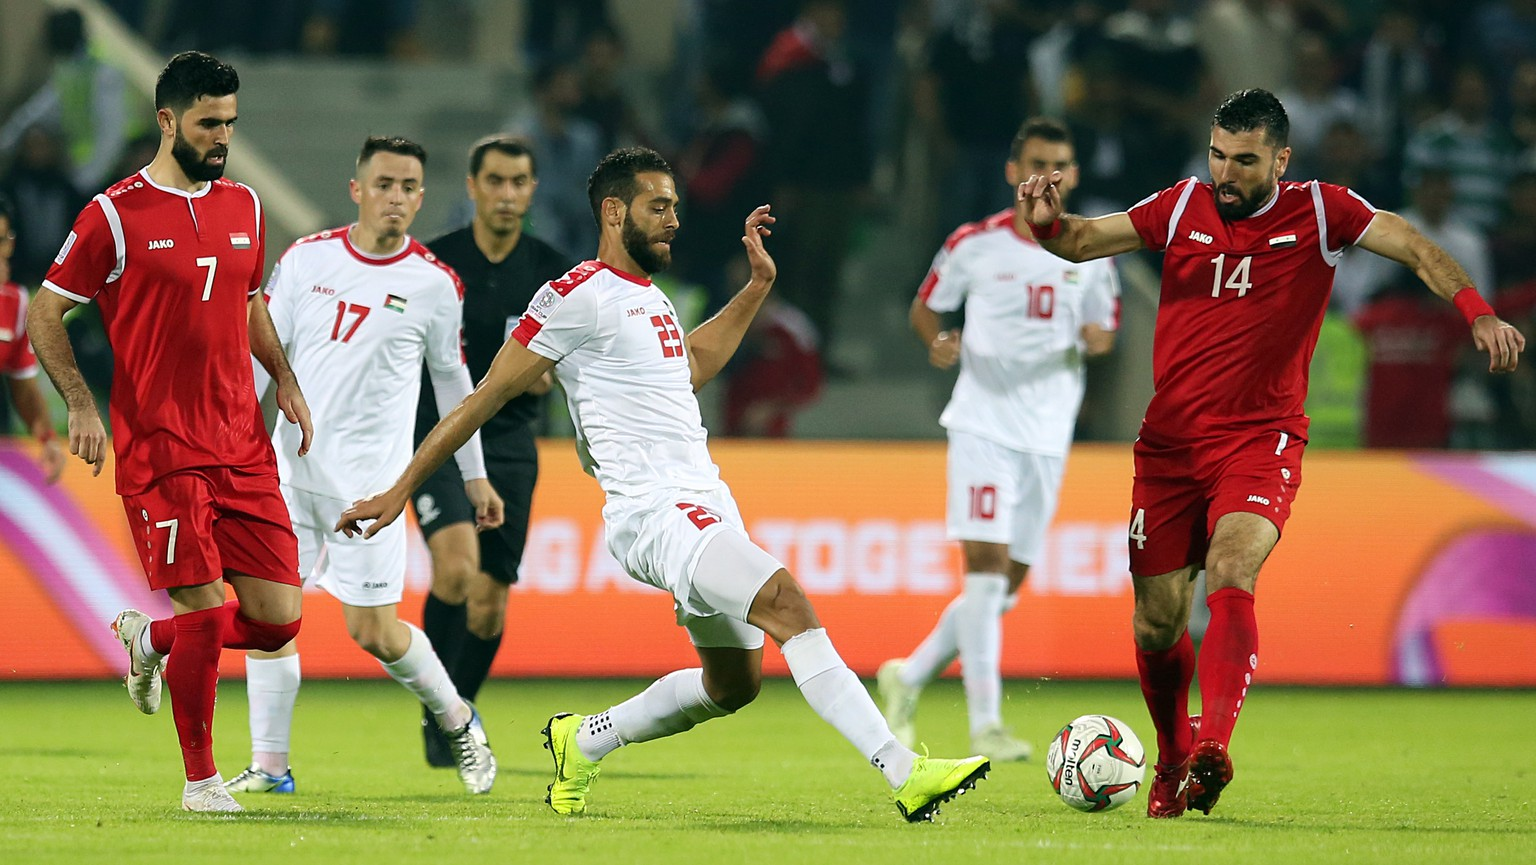 epa07265804 Tamer Hag Mohamad (R) of Syria in action against Mohammed Darwish (C) of Palestine during the 2019 AFC Asian Cup group B preliminary round match between Syria and Palestine in Sharjah, United Arab Emirates, 06 January 2019.  EPA/MAHMOUD KHALED